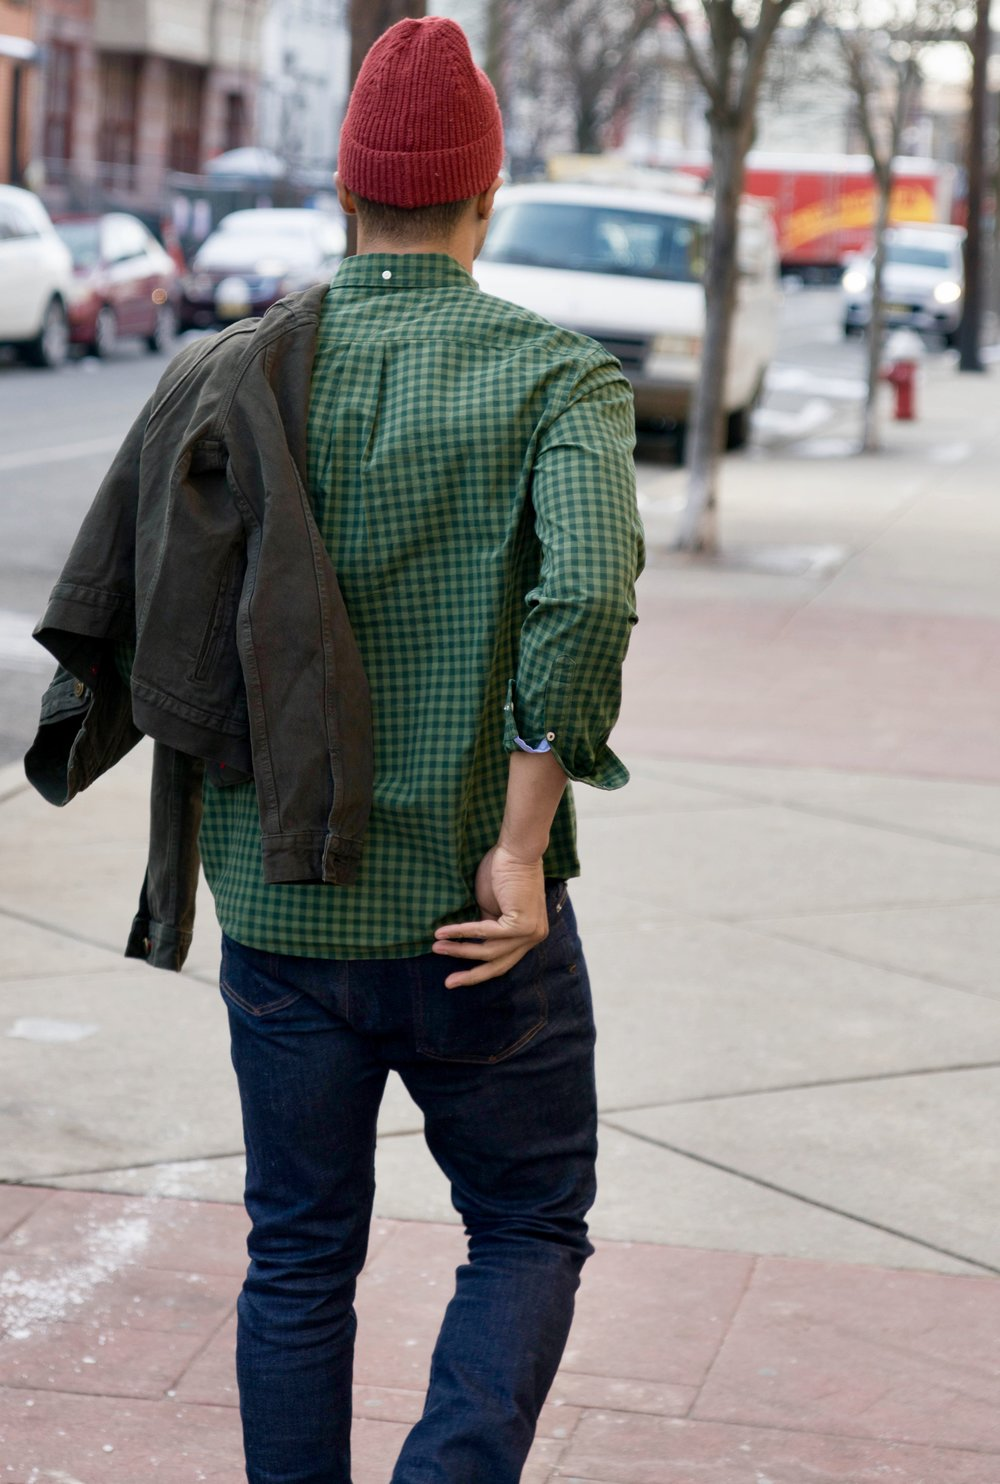 Dress It Up or Dress It Down - Men's Classic Fit Casey Check Print & Men's Garment Dyed Denim Jacket